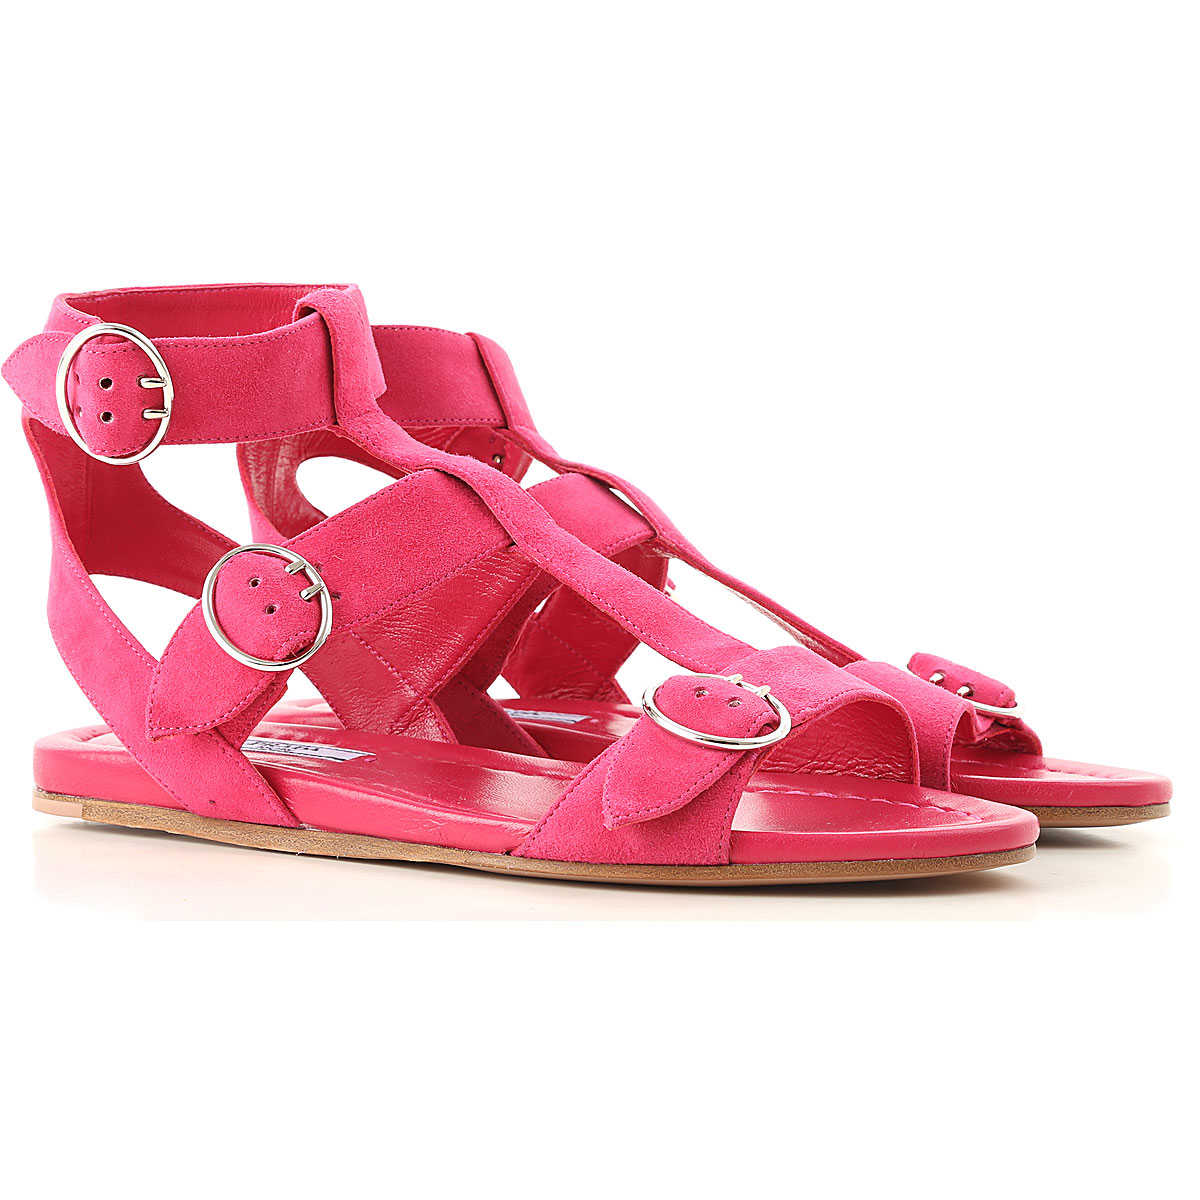 Prada Womens Shoes On Sale in Outlet